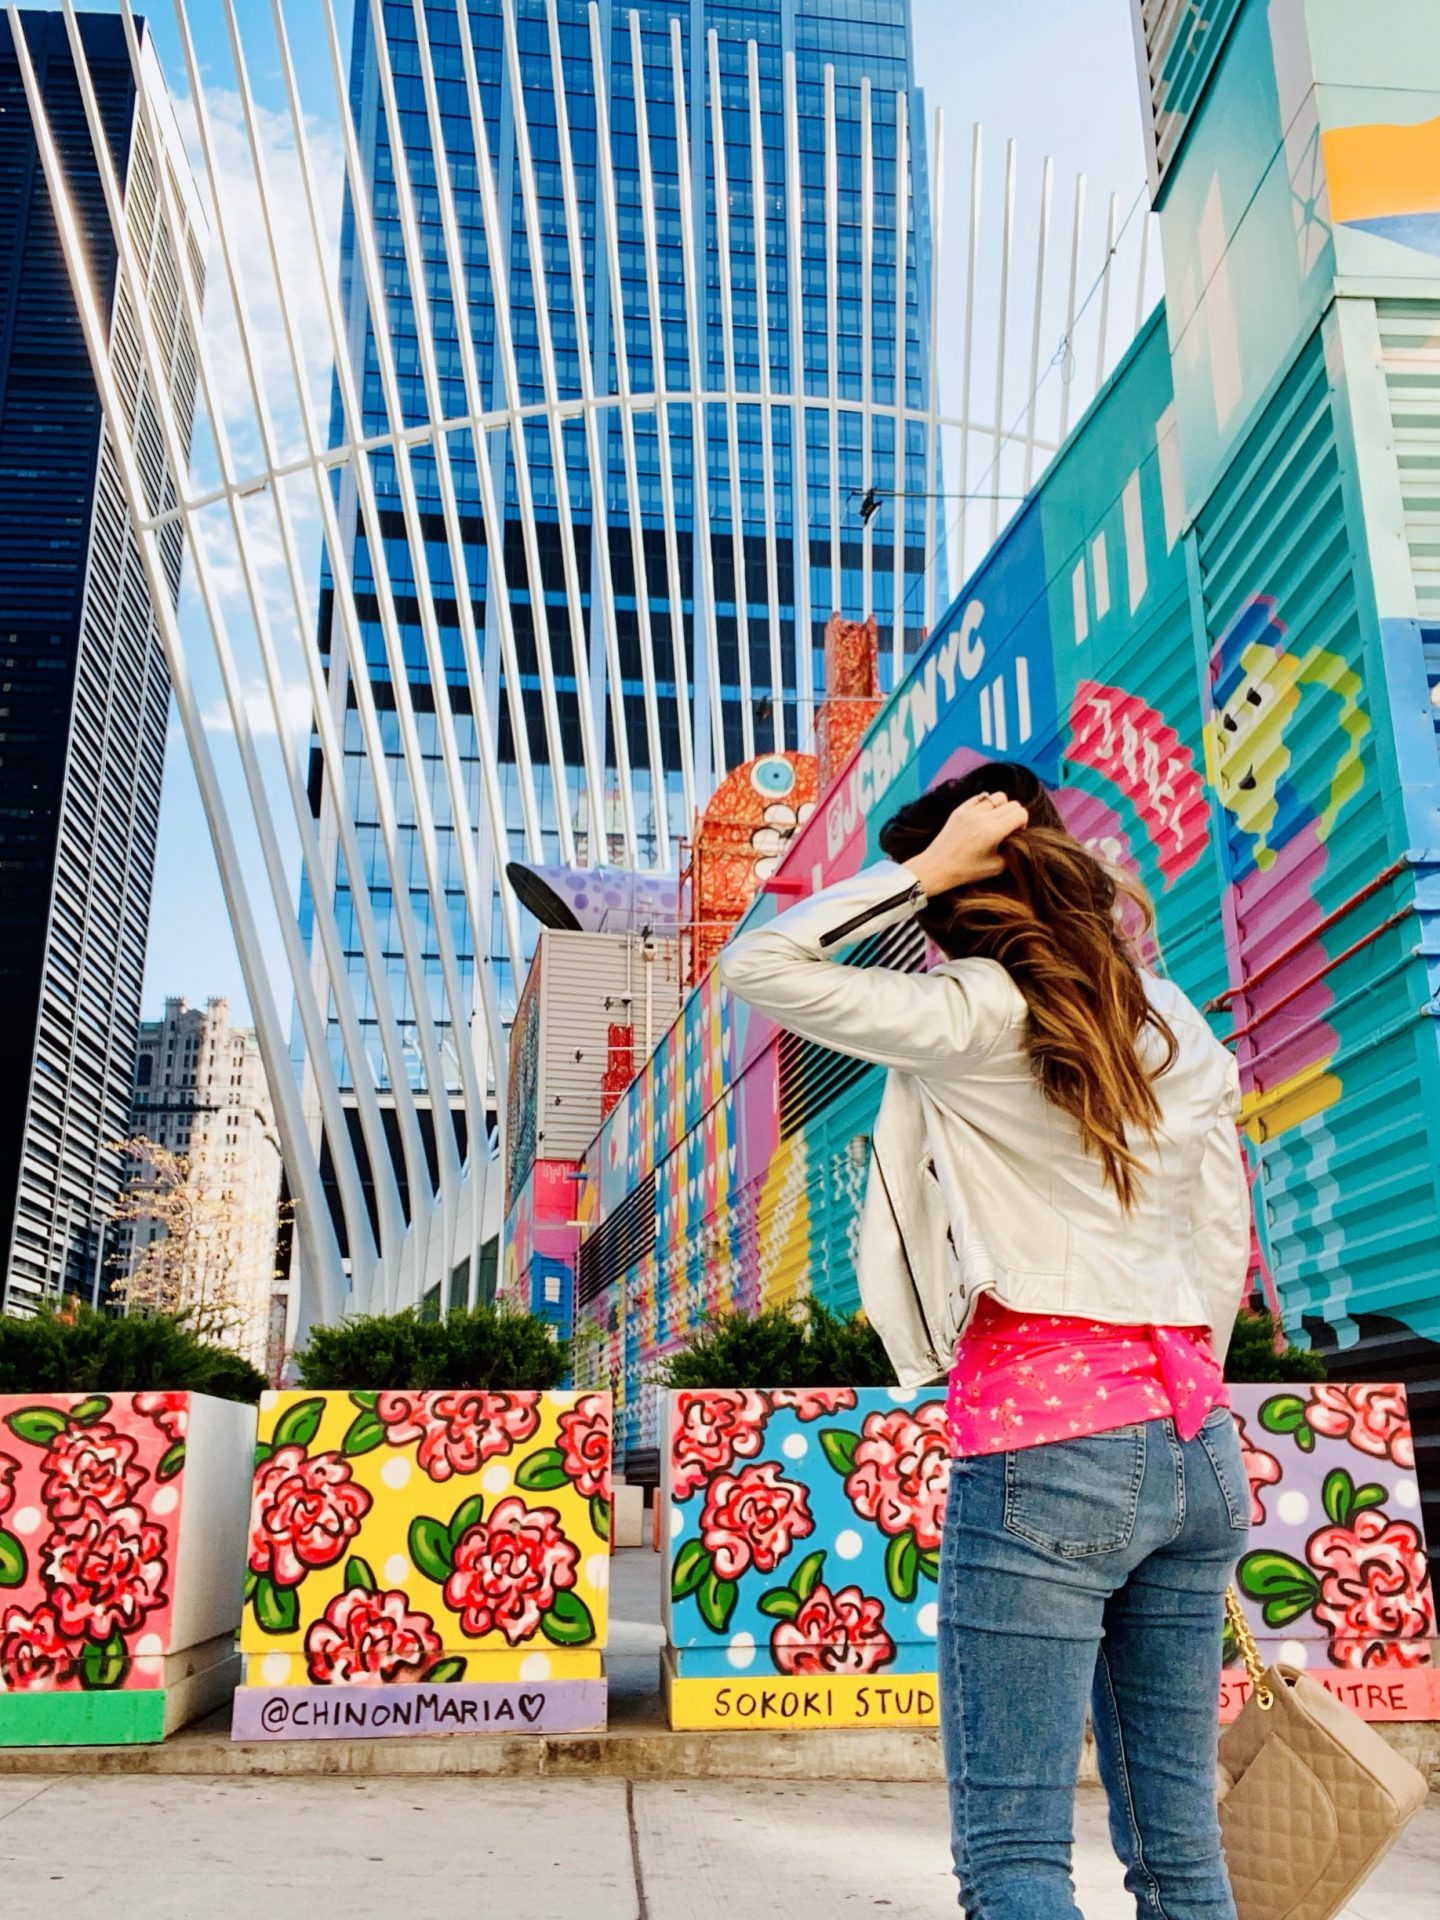 nyc street art, wtc, world trade center, nyc blogger, instagramable nyc, nyc mural art, fidi nyc, oculus nyc